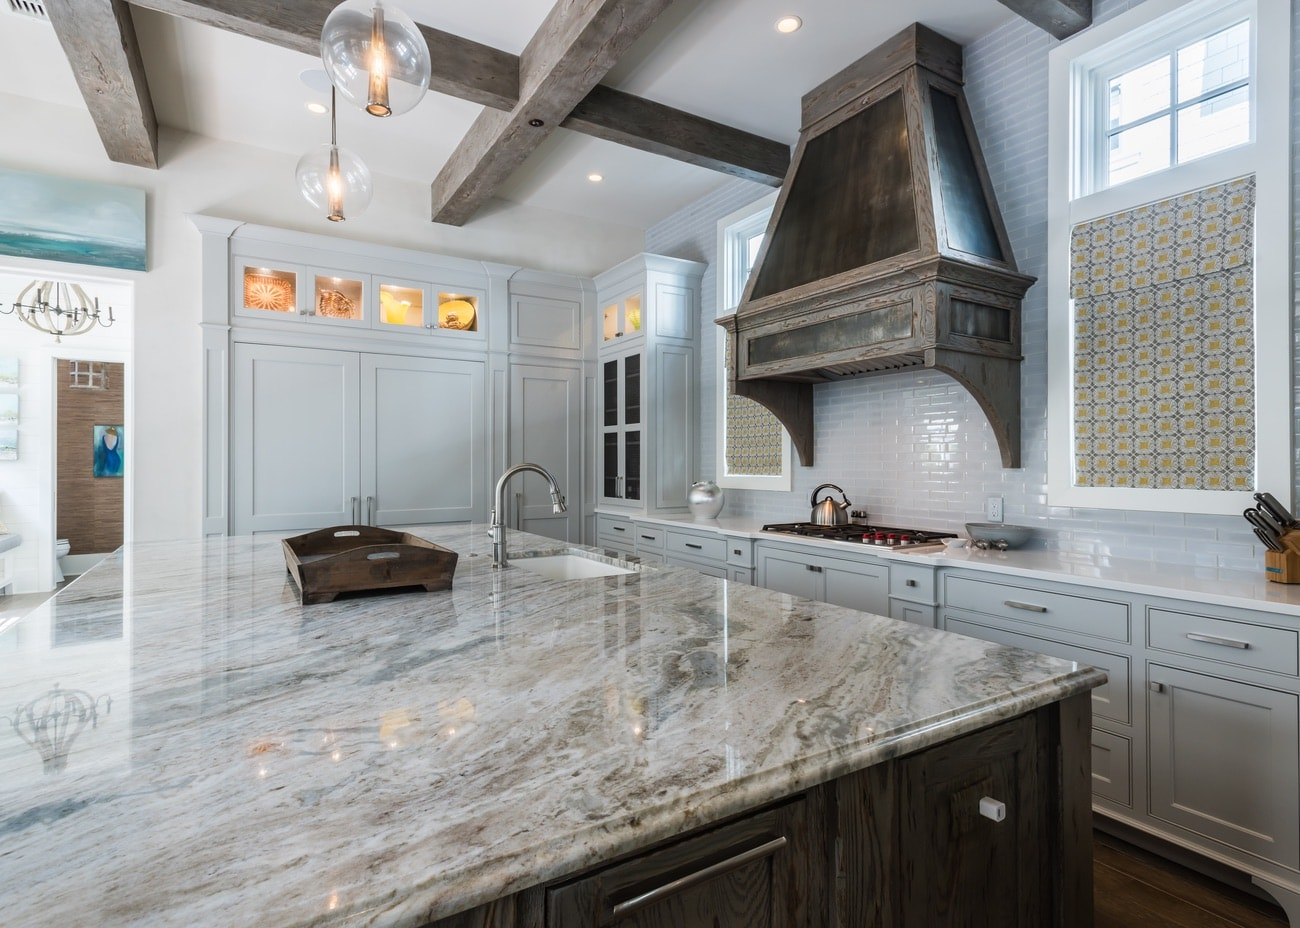 Home interior design by Sugar Beach Interiors, Panama City Beach, Florida, WaterSound